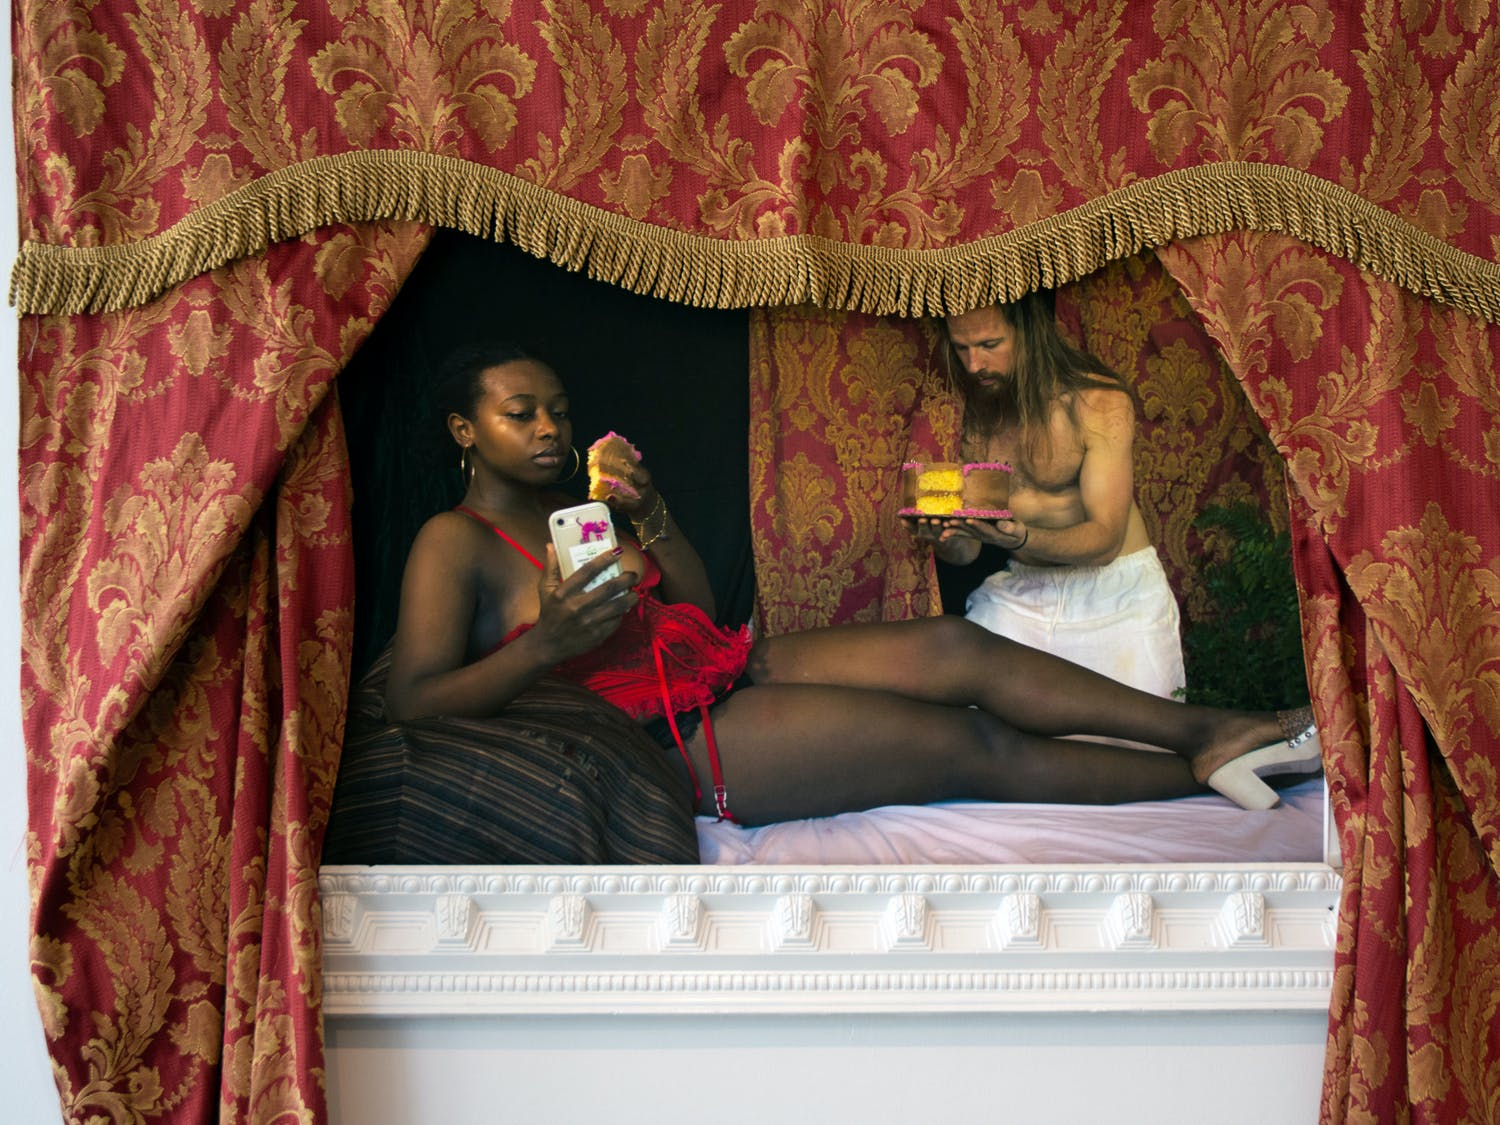 """""""It Ain't About You Boo"""" by Keiaria Williams sits near the entrance of the UMOJA exhibit at the Gainesville Fine Arts Association on Wednesday, June 9, 2021. The UMOJA exhibit is a celebration of Black art that will occupy the entire exhibition space at the GFAA until June 19."""